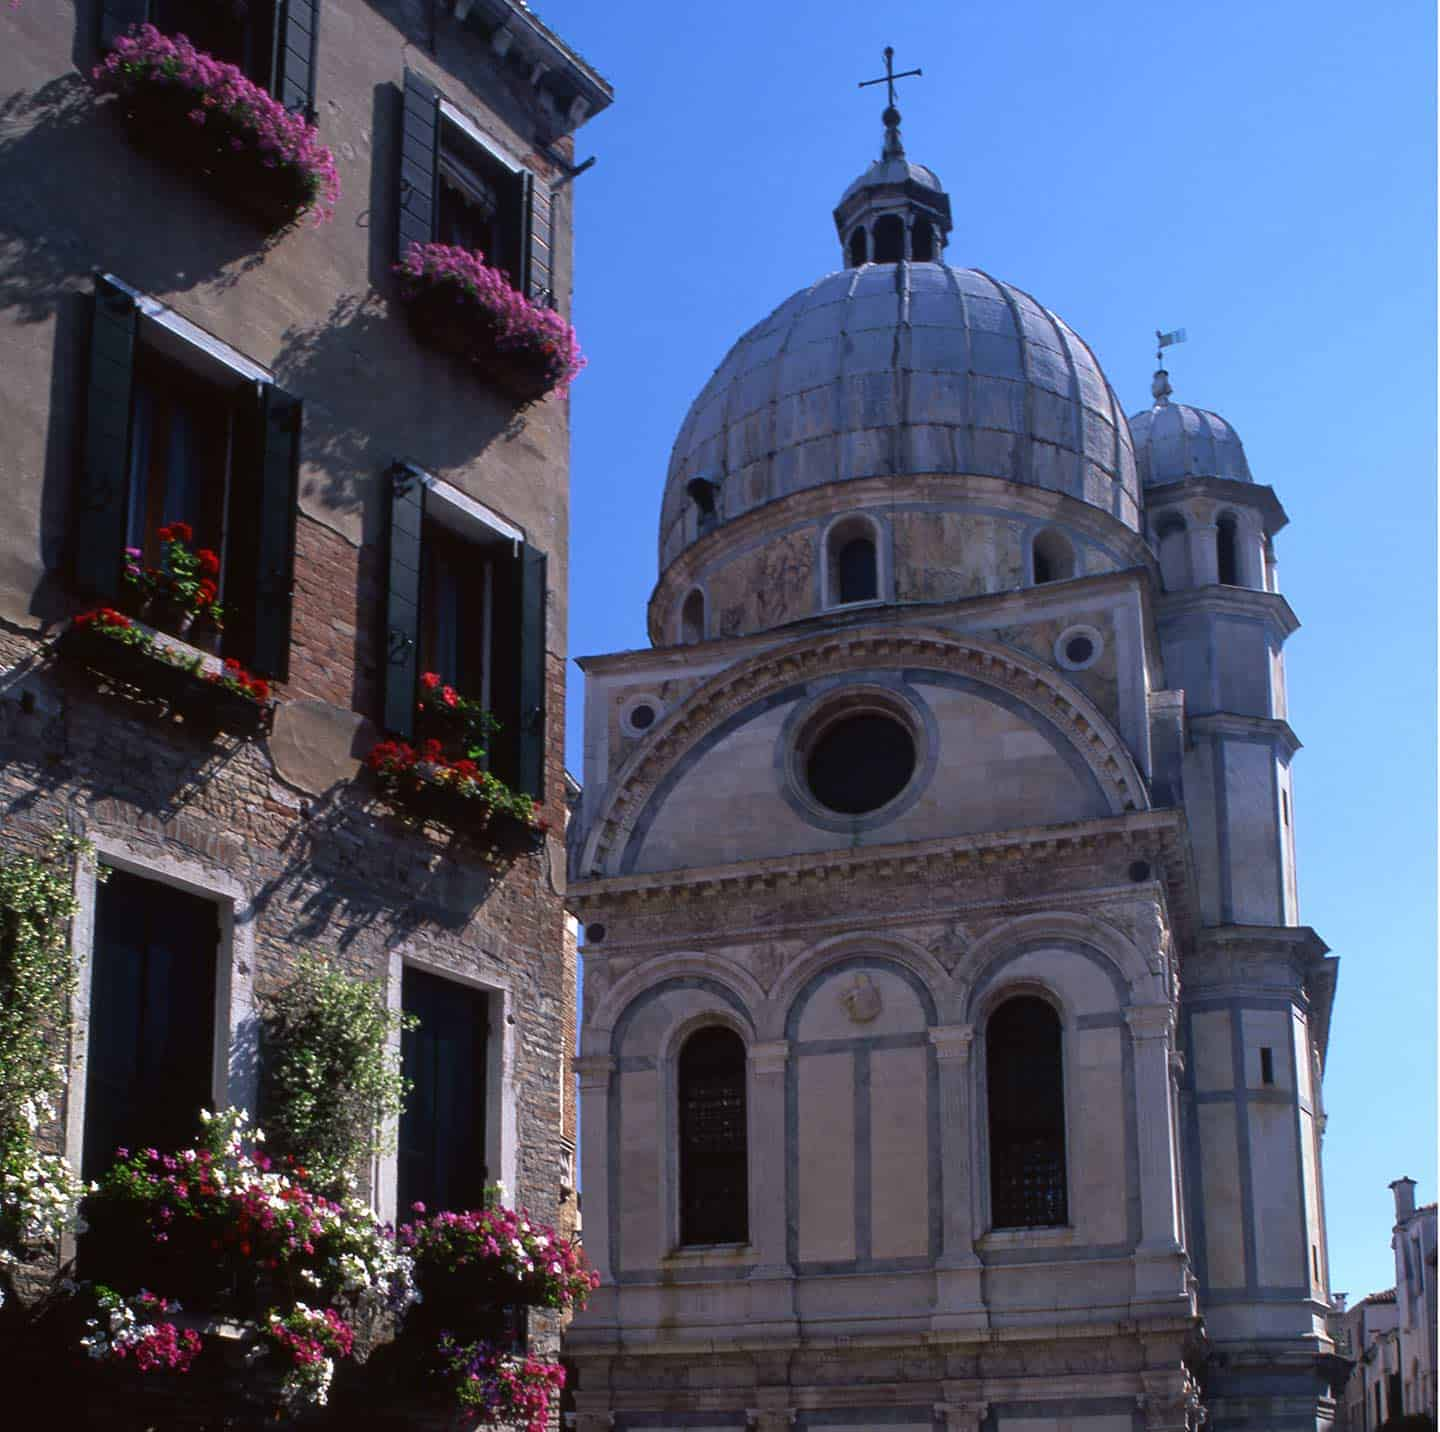 Image of Santa Maria dei MIracoli church